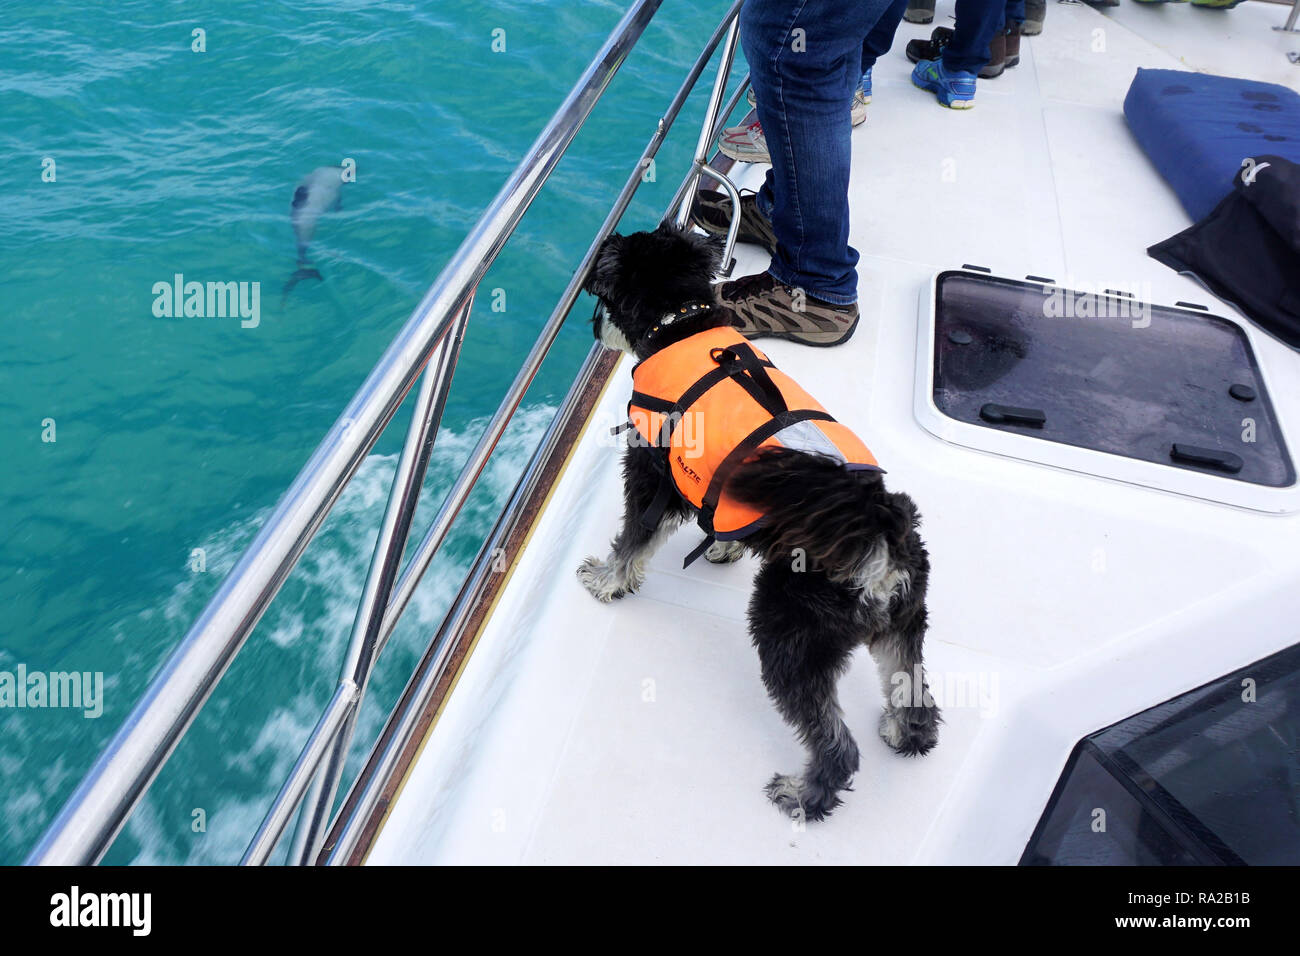 Buster, the Dolphin-Spotting Dog on the Job during a Harbour Cruise in Akaroa, New Zealand - Stock Image